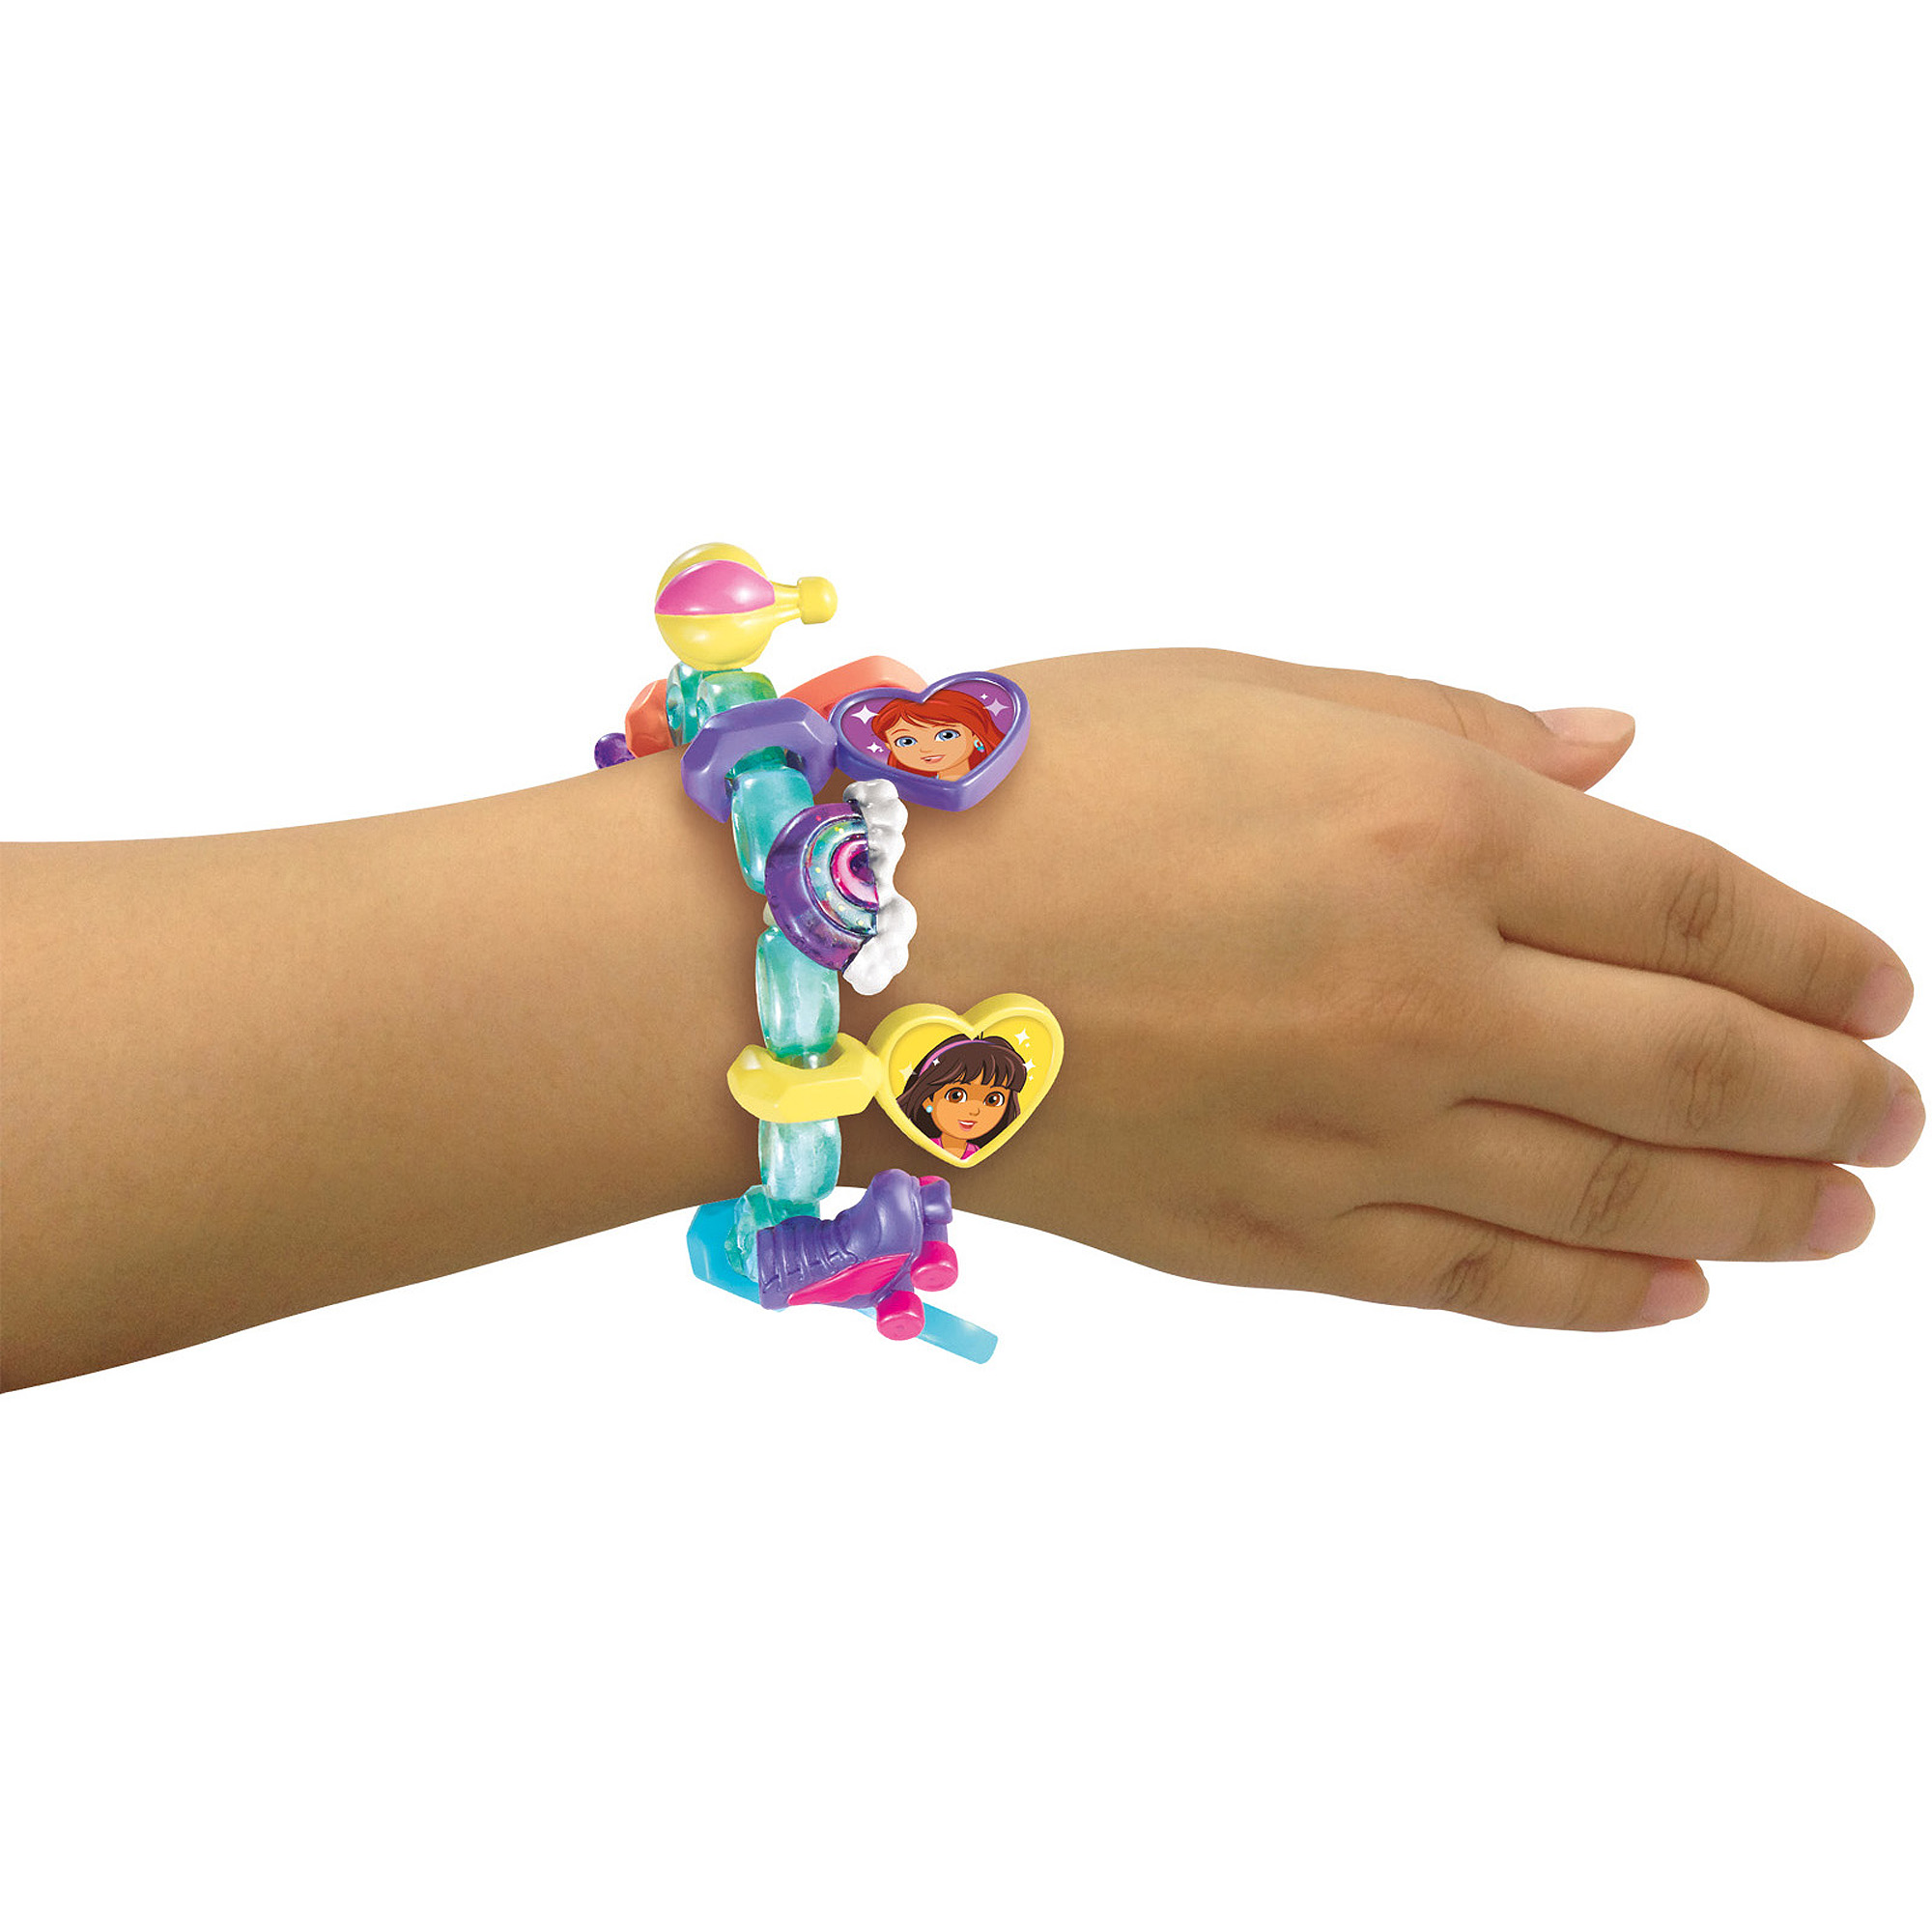 Fisher Price Dora and Friends Magic Charm Bracelet by Mattel